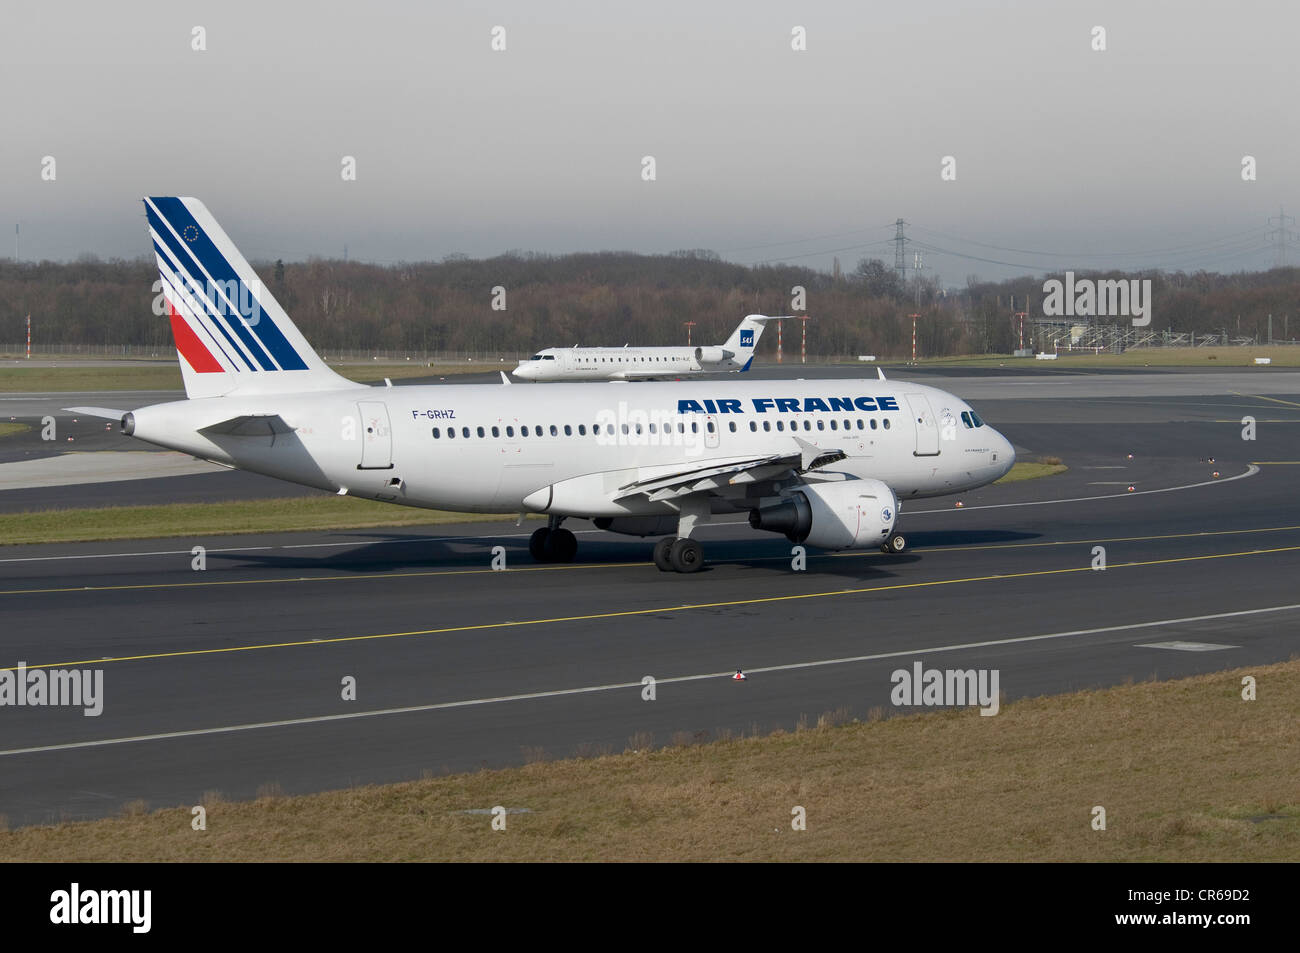 Air France Airbus A319-111 passenger jet on the runway of Duesseldorf International Airport, behind, a SAS Jet taking - Stock Image